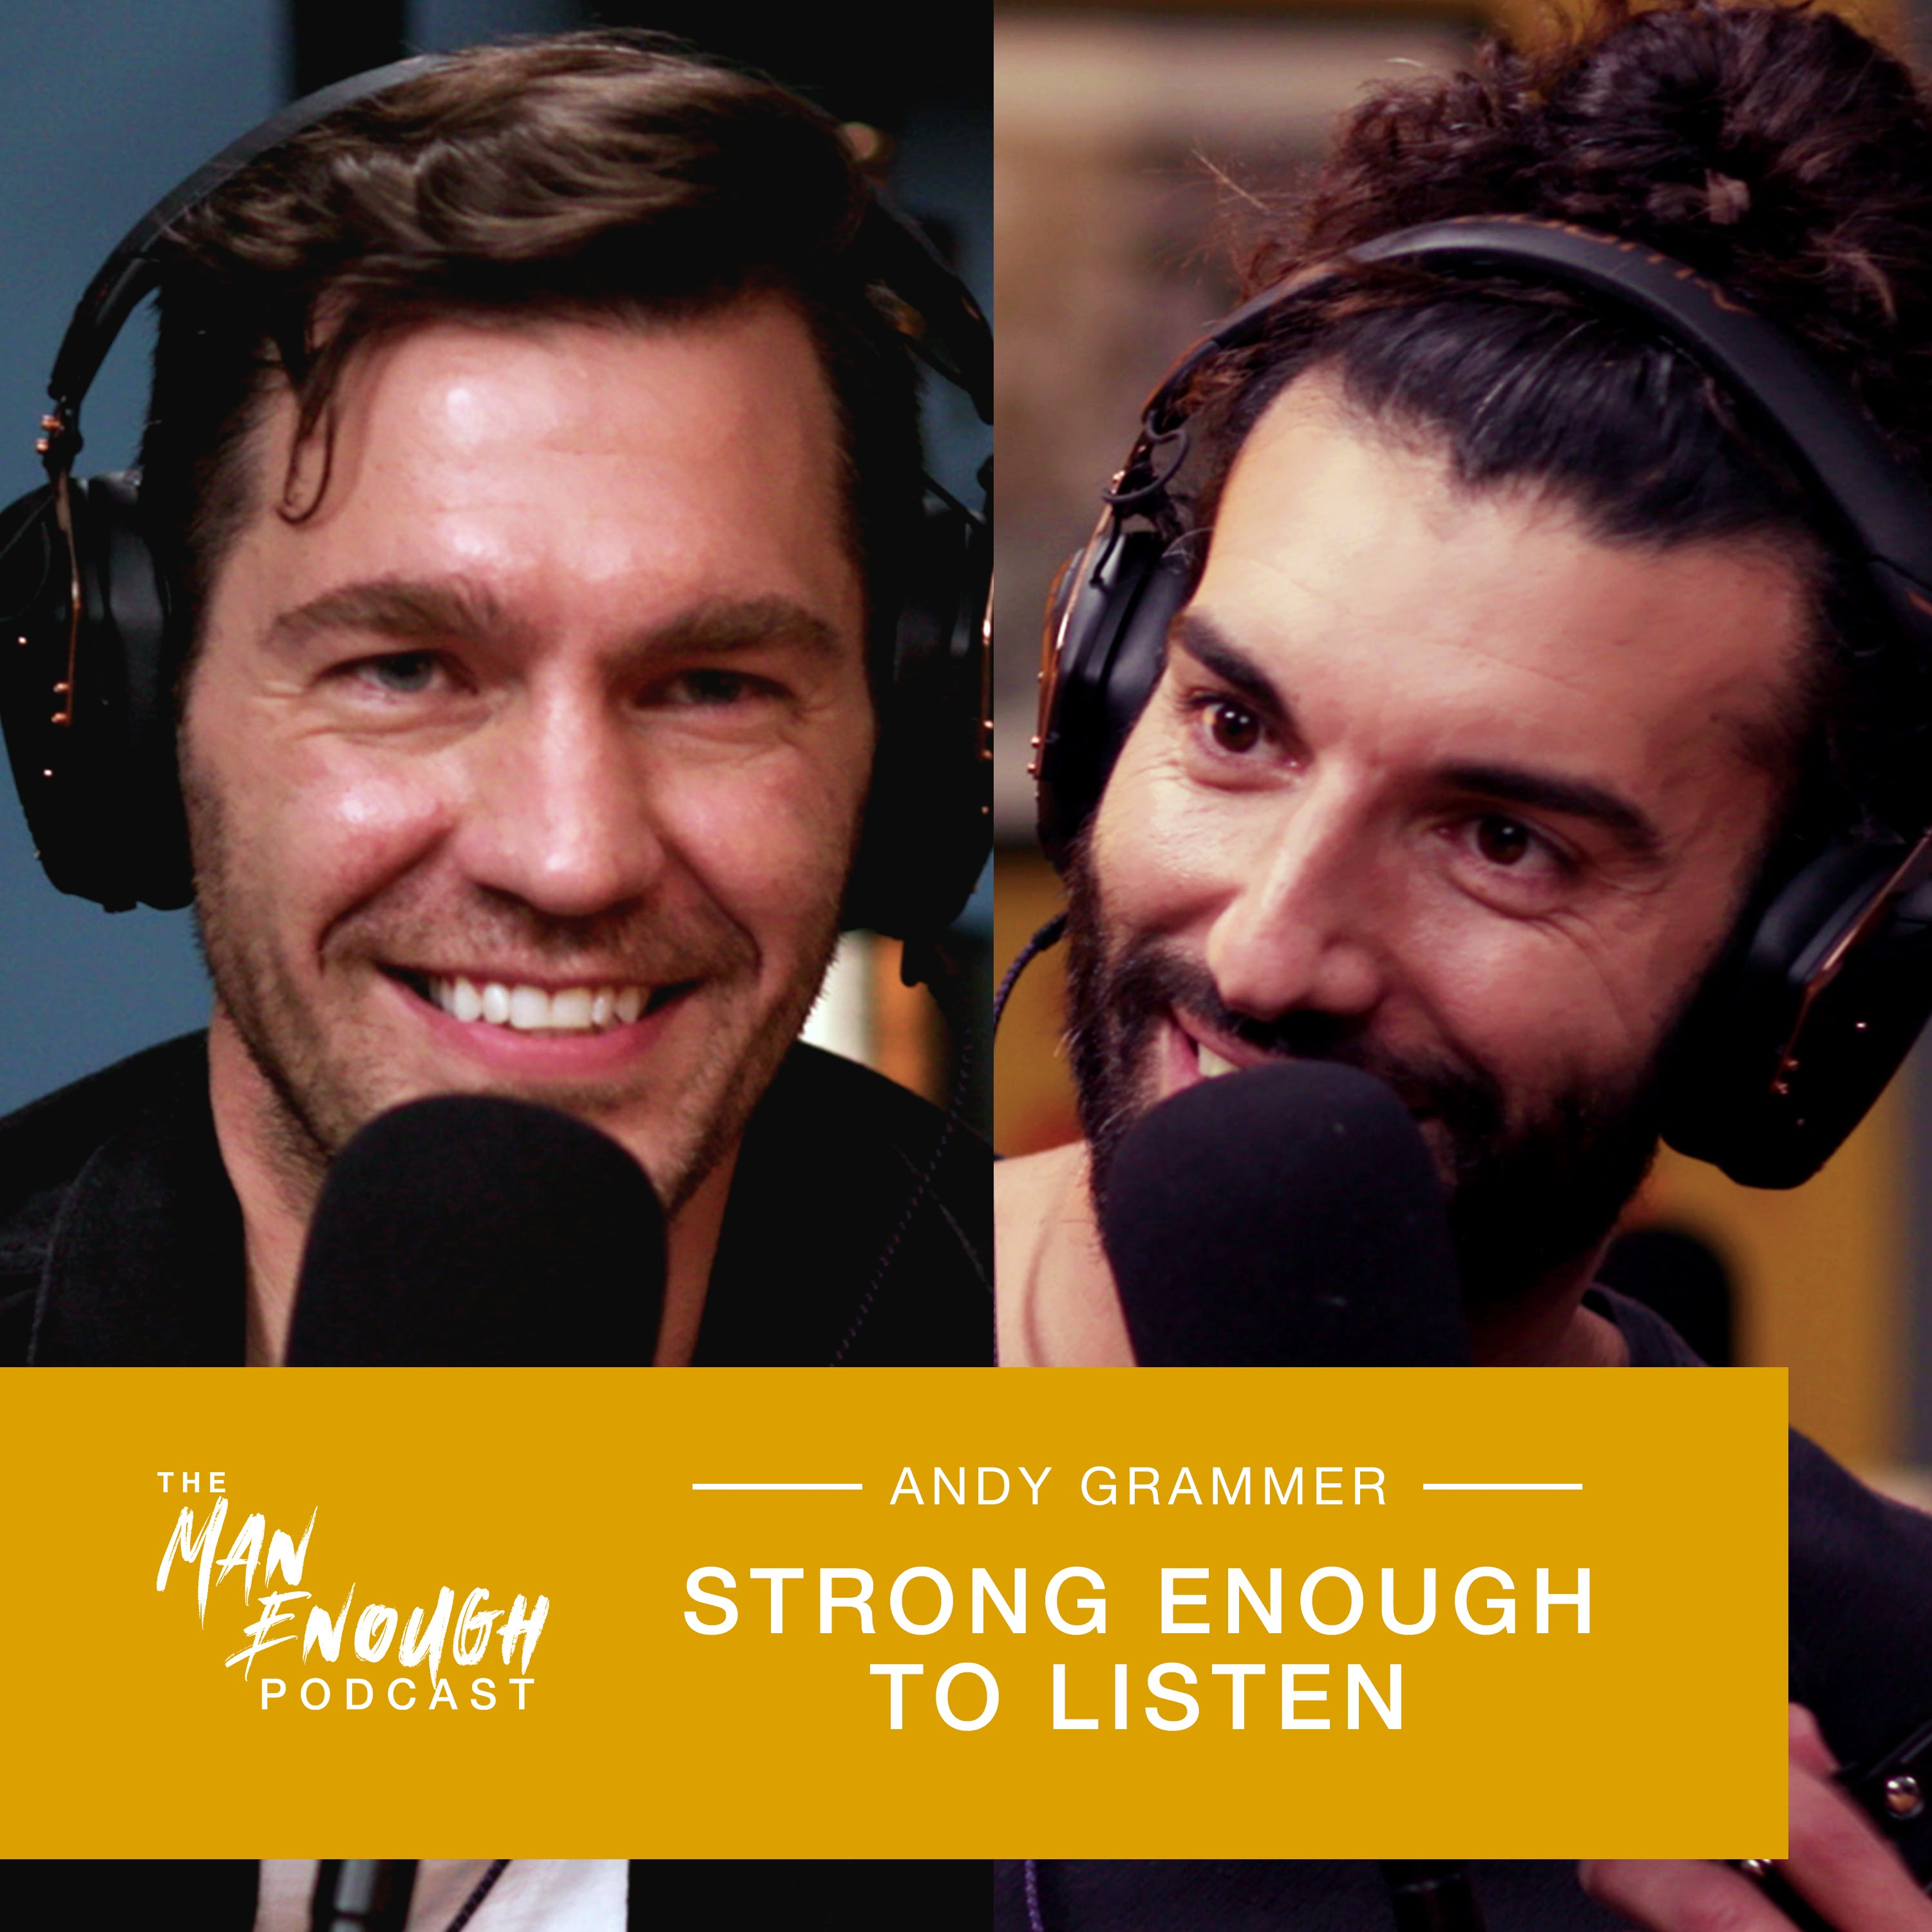 Andy Grammer: Strong Enough to Listen